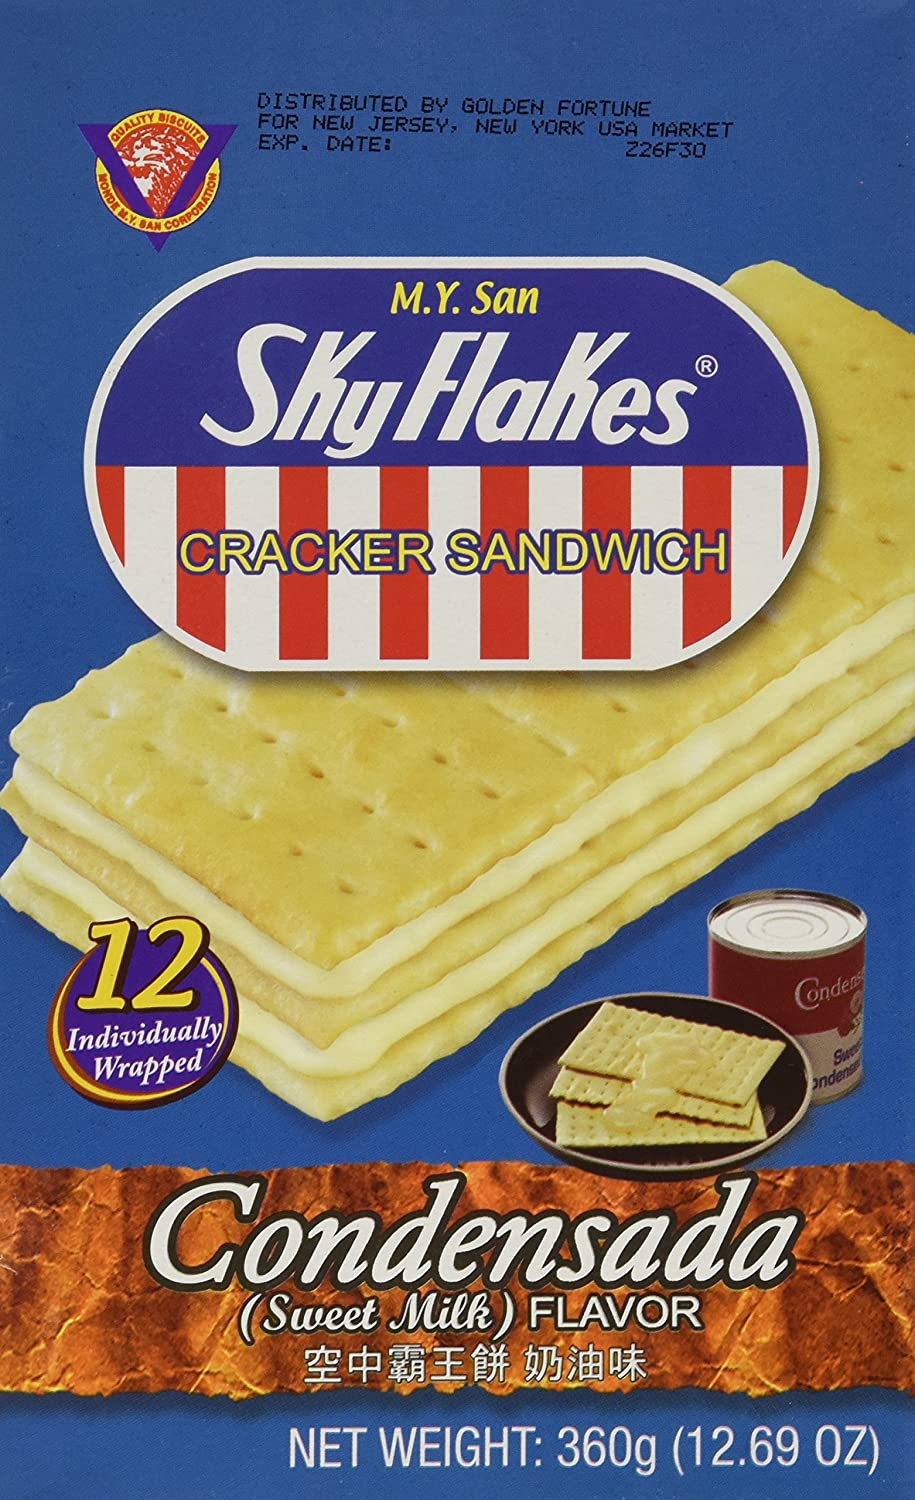 MY San SkyFlakes Cracker Sandwich (Condensada - Sweet Milk Flavor) - 12.69 OZ